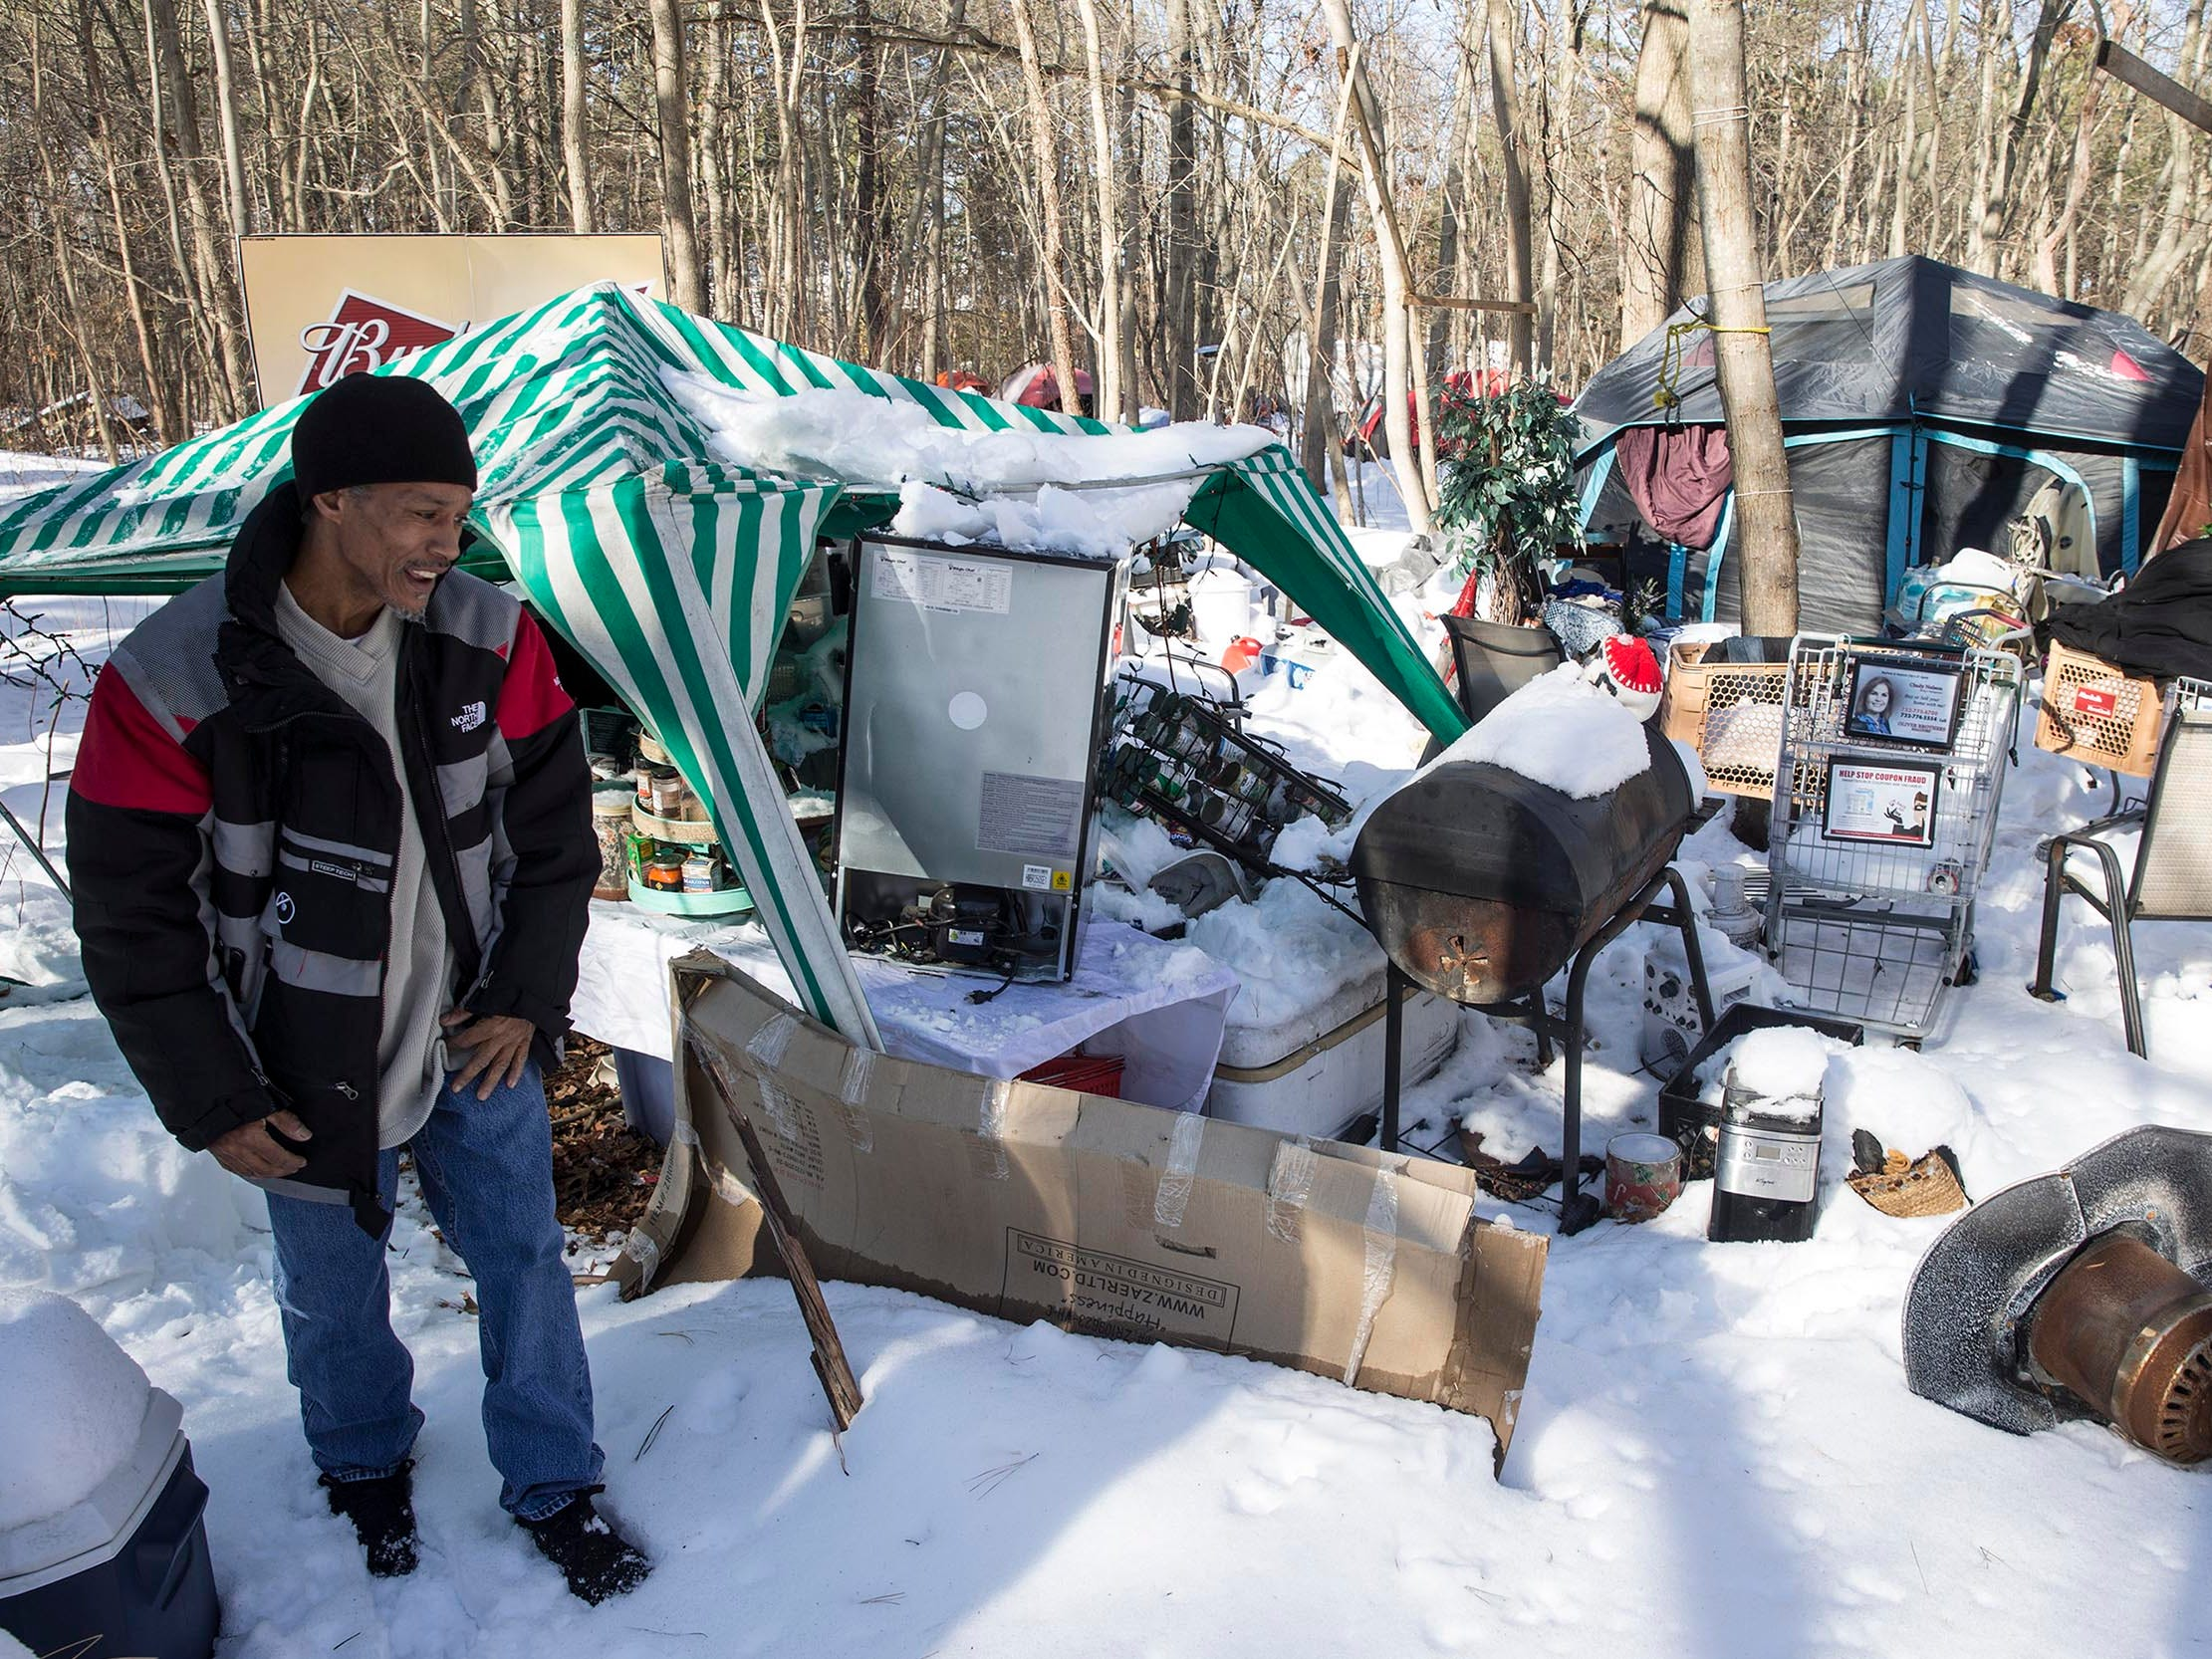 Carlos Santiago attempts to clean up the camp that took a beating from snow and cold weather recently.  About one dozen homeless people who live in a small encampment in the woods have been staying at the Crystal Inn since severe cold weather and snow hit the area. Donations collected made the hotel stay possible.   Neptune, NJ on Wednesday, January 10, 2018